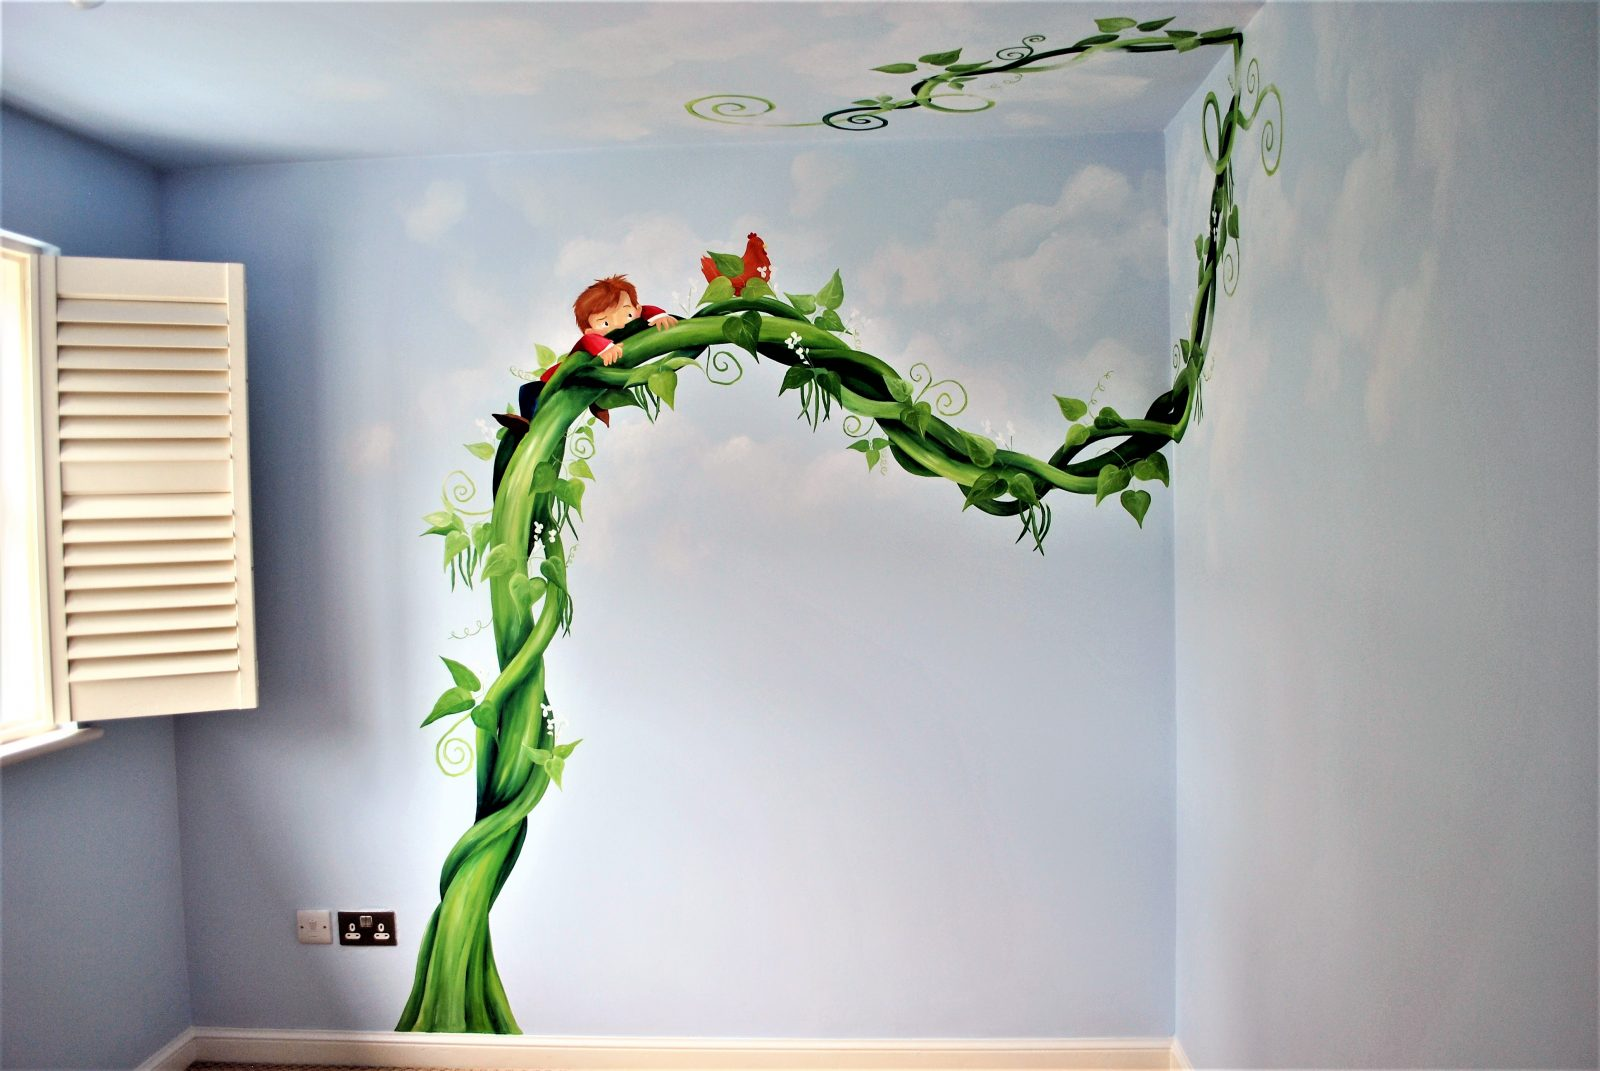 Jack and the Beanstalk Mural